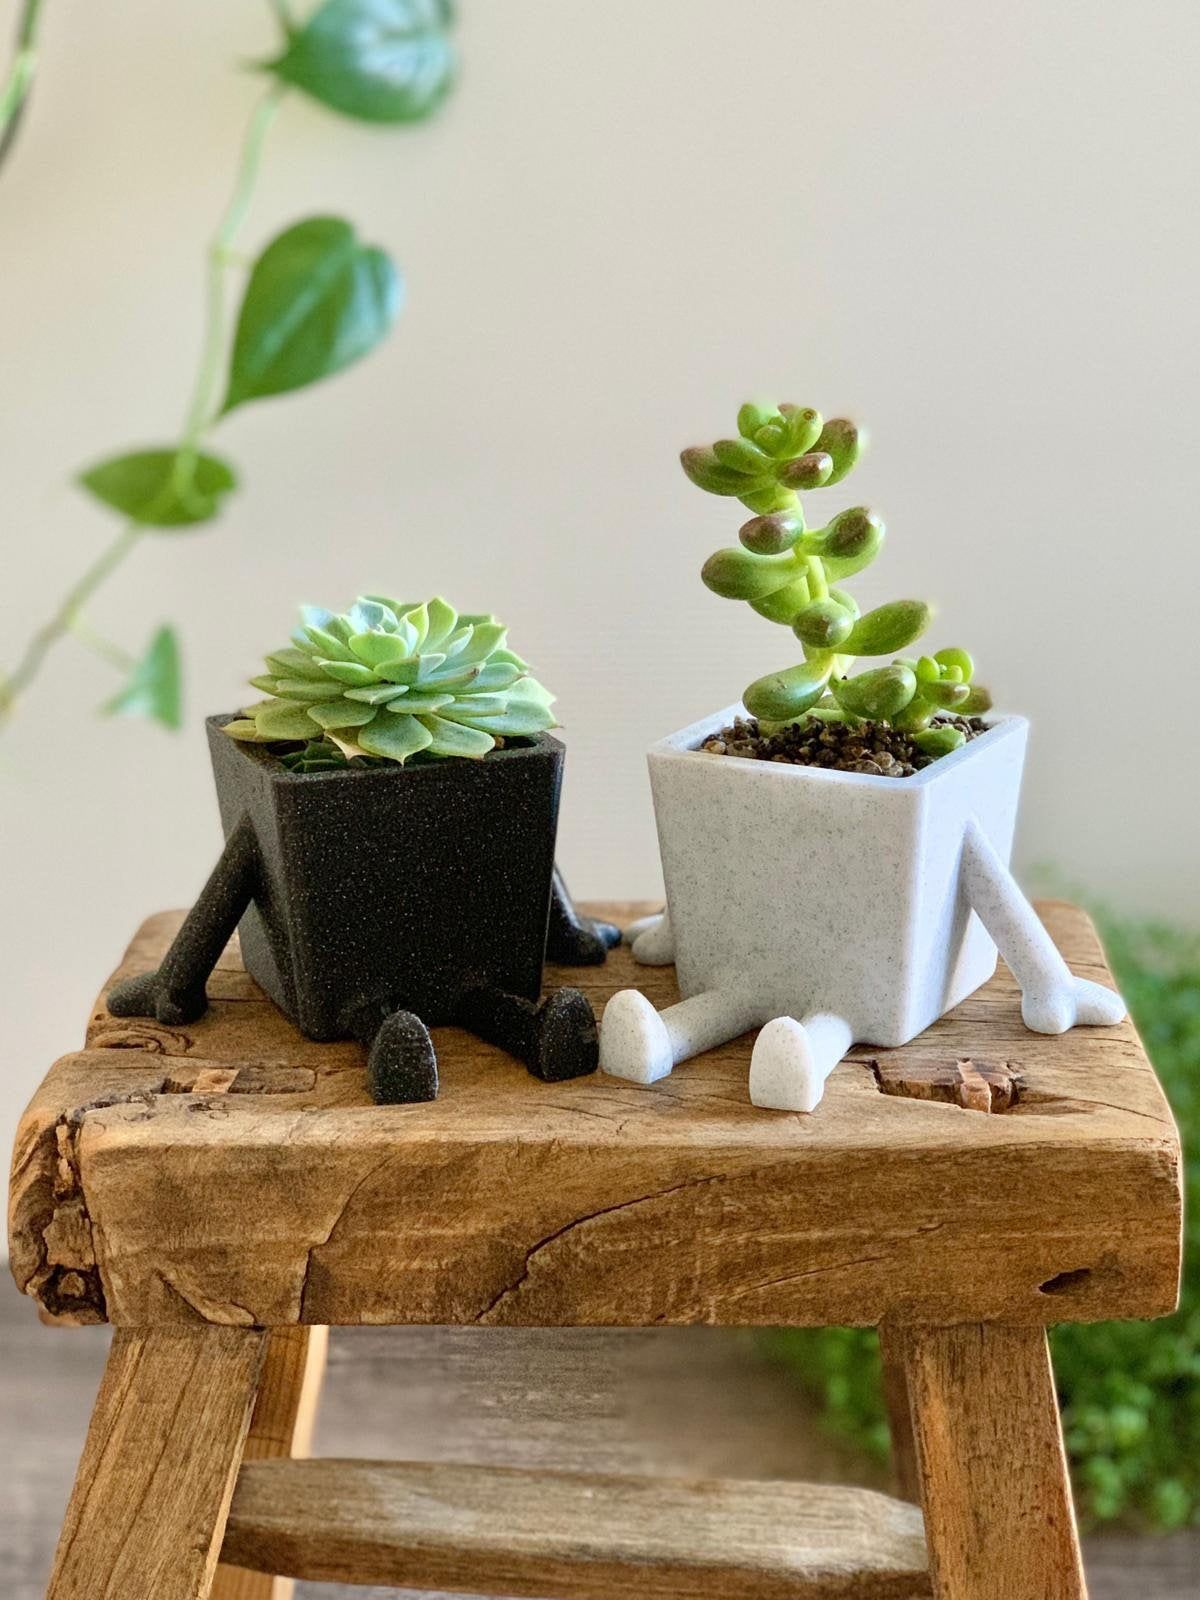 Cute Succulent Planter With Arms And Legs Sitting Planter Etsy In 2020 Plant Pot Decoration Indoor Plant Pots Succulent Planter